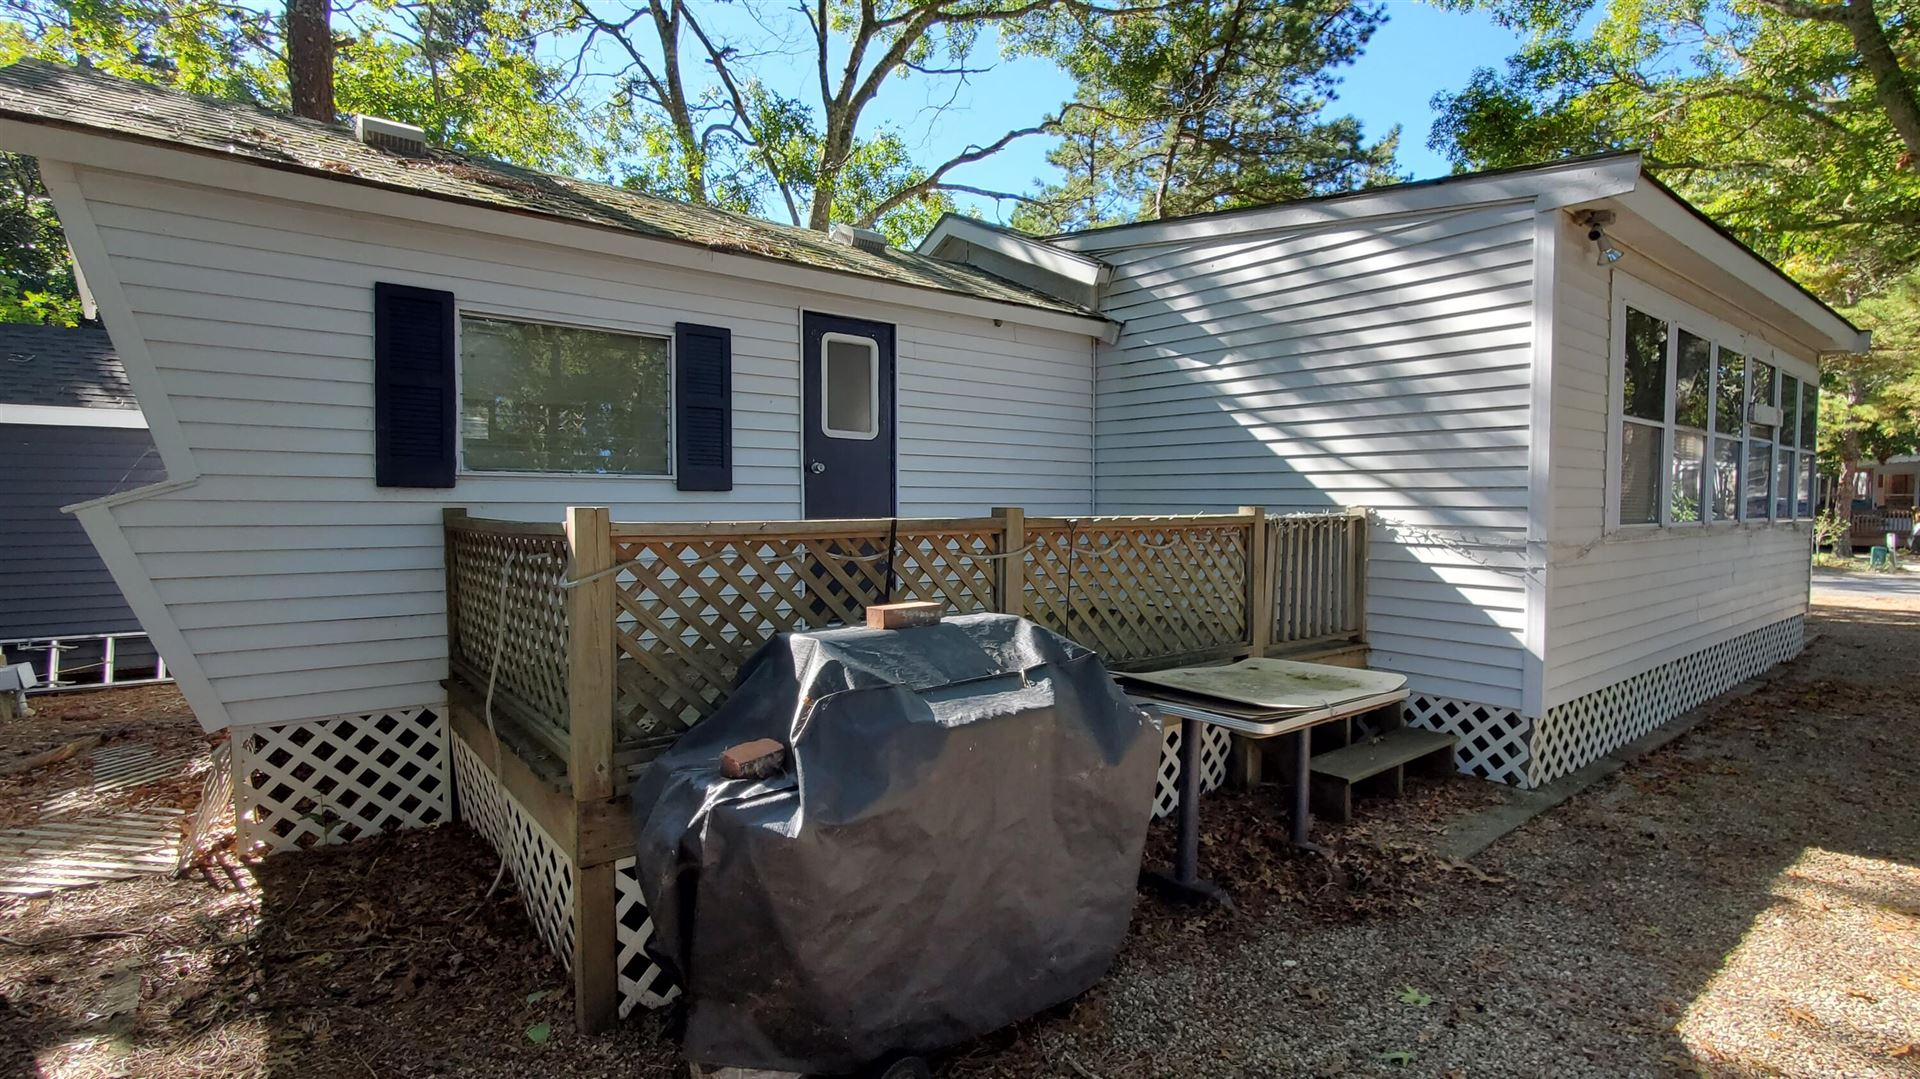 Photo of 310 Old Chatham Road #A97, South Dennis, MA 02660 (MLS # 22106335)